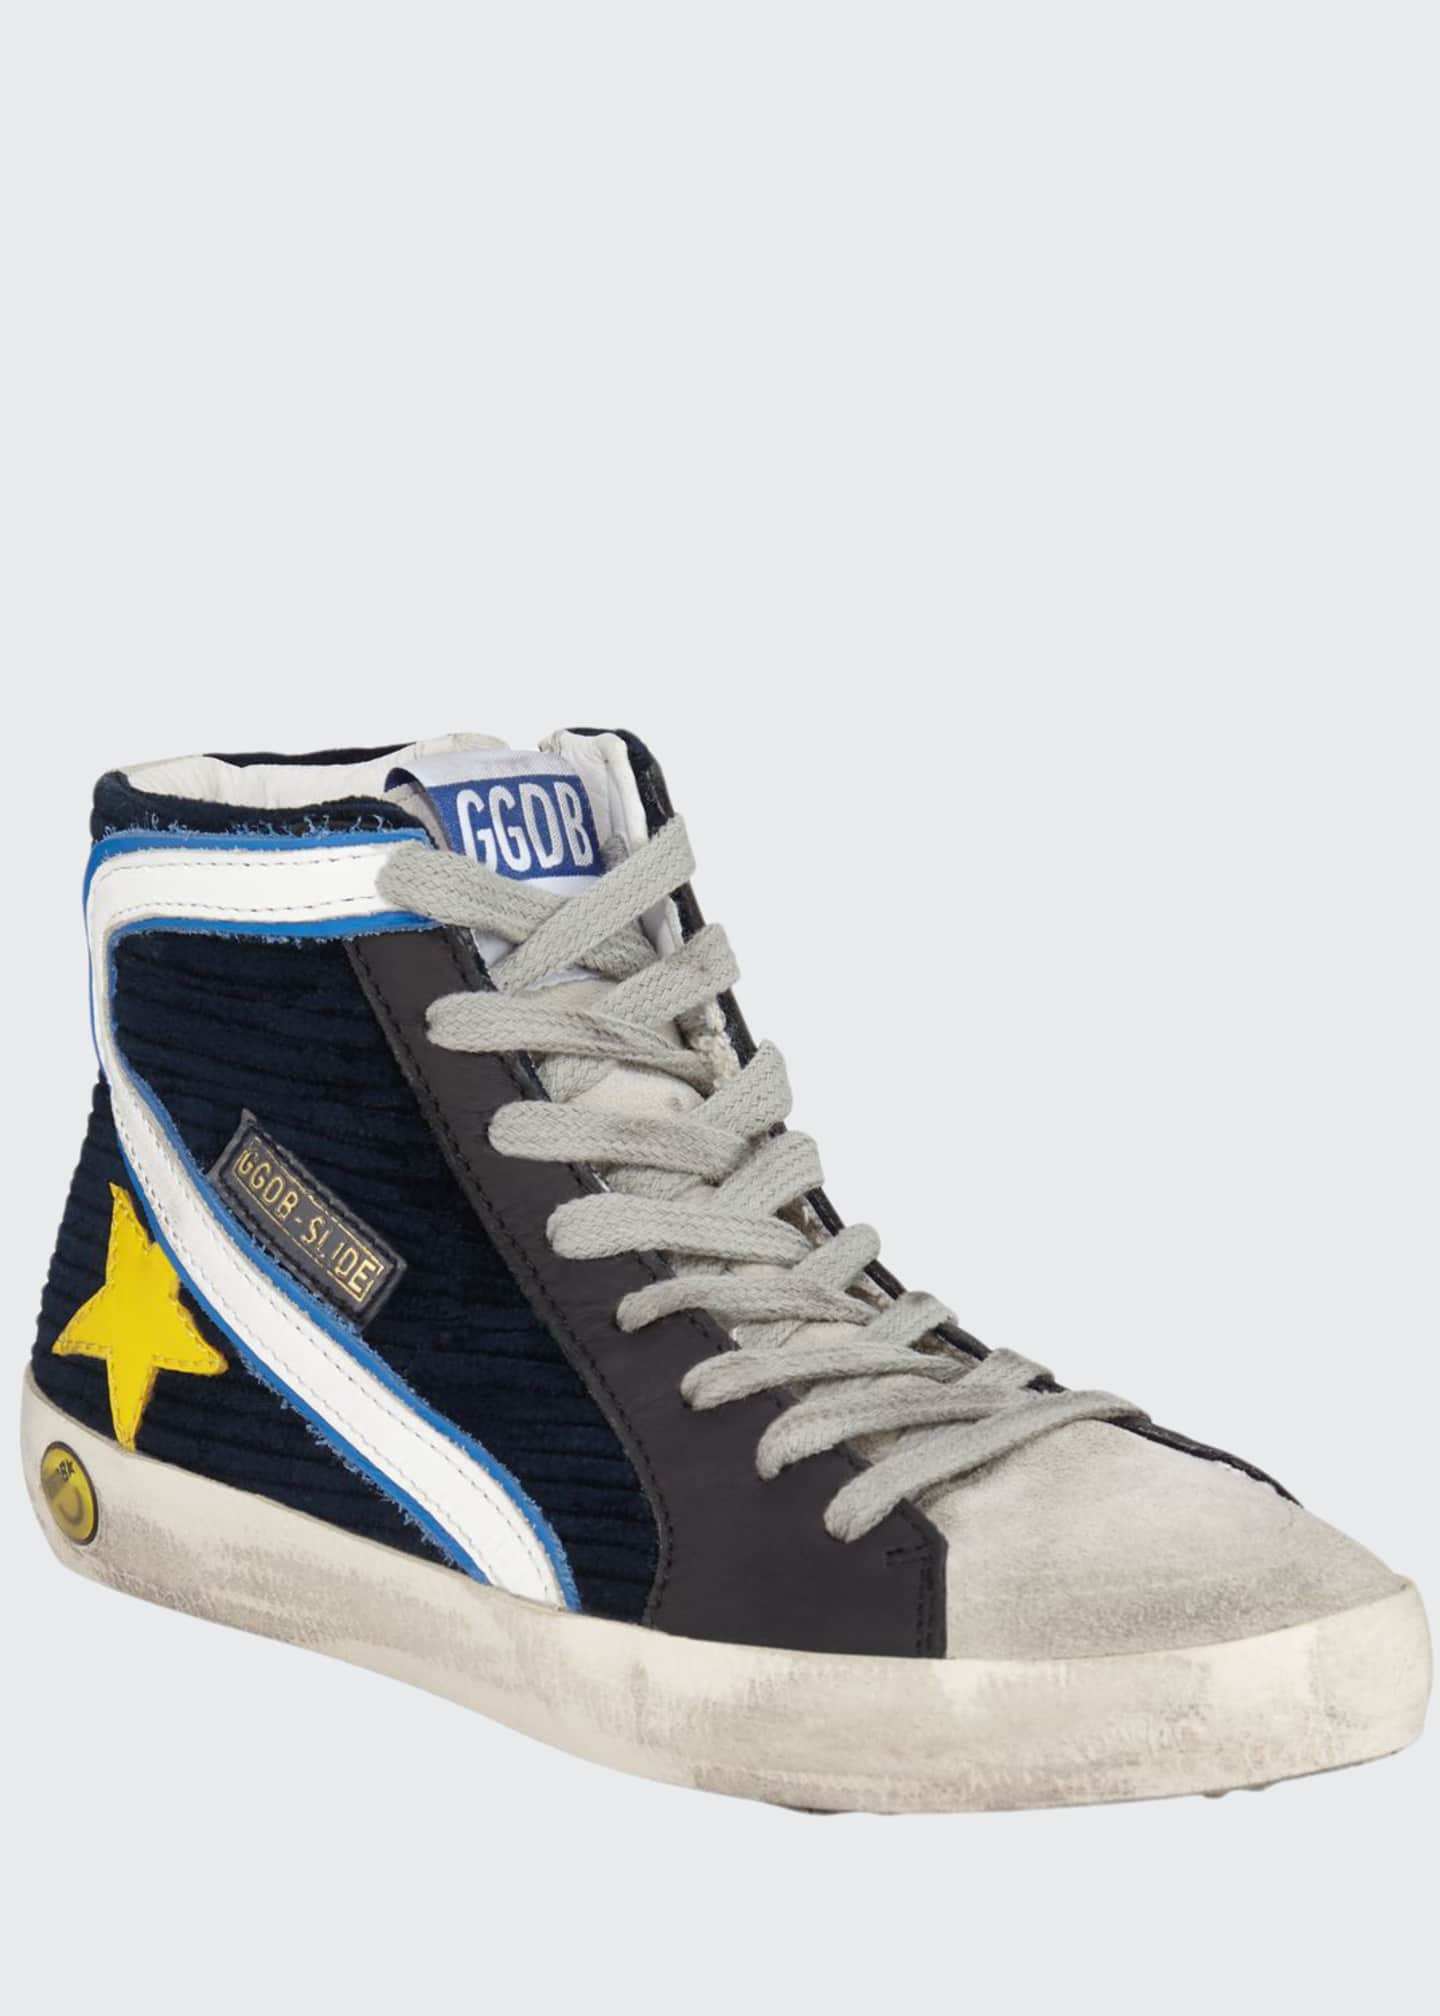 Image 1 of 4: Boy's Slide High-Top Corduroy Sneakers, Toddler/Kids